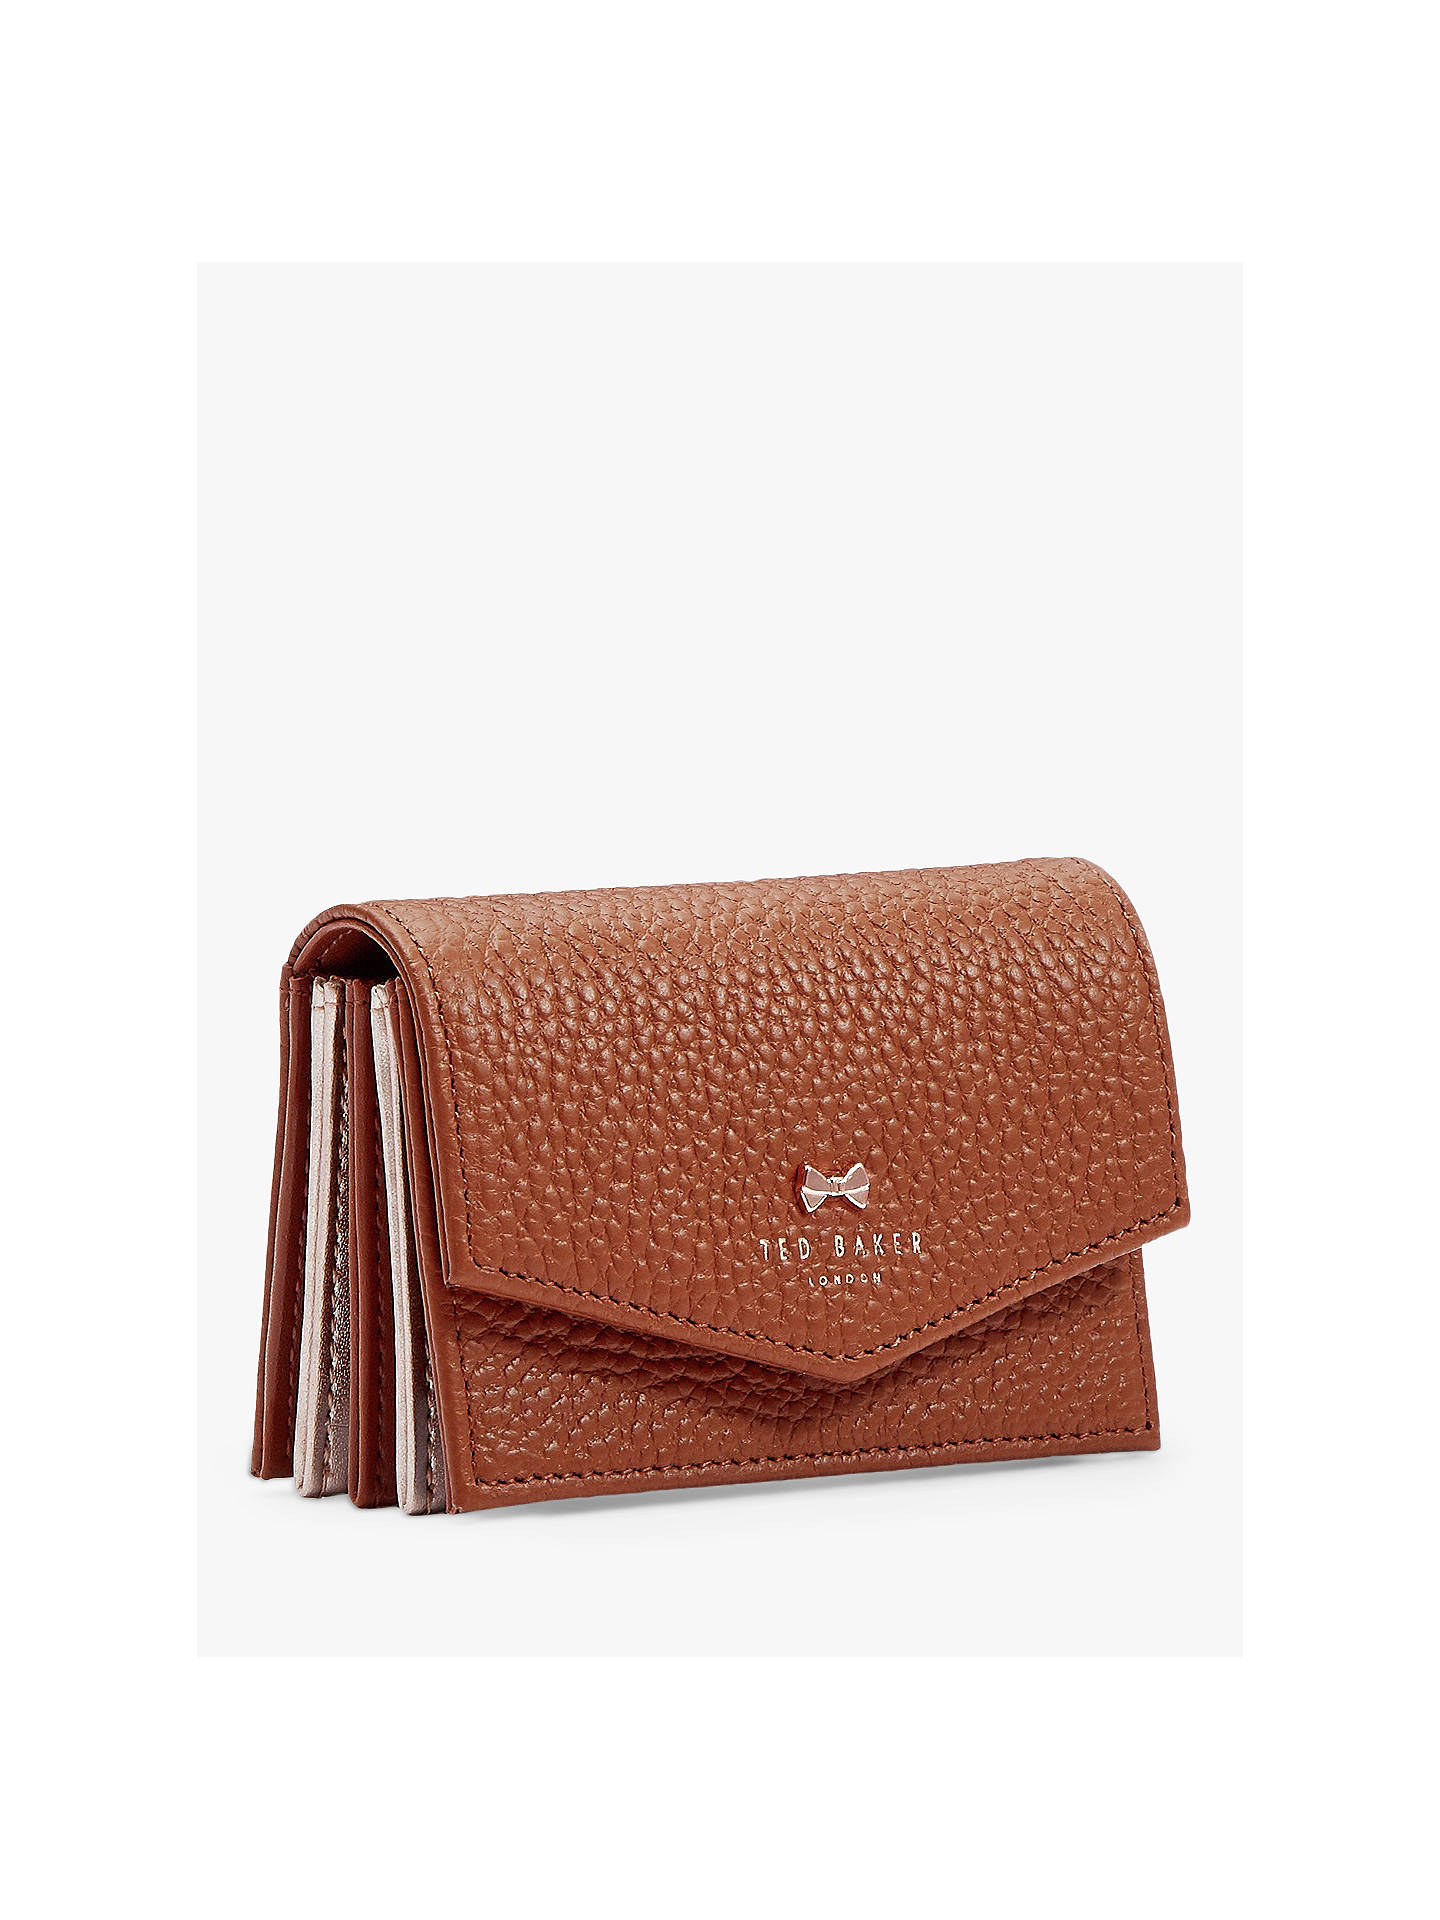 finest selection def86 4b8a1 Ted Baker Hiedi Leather Credit Card Holder, Brown